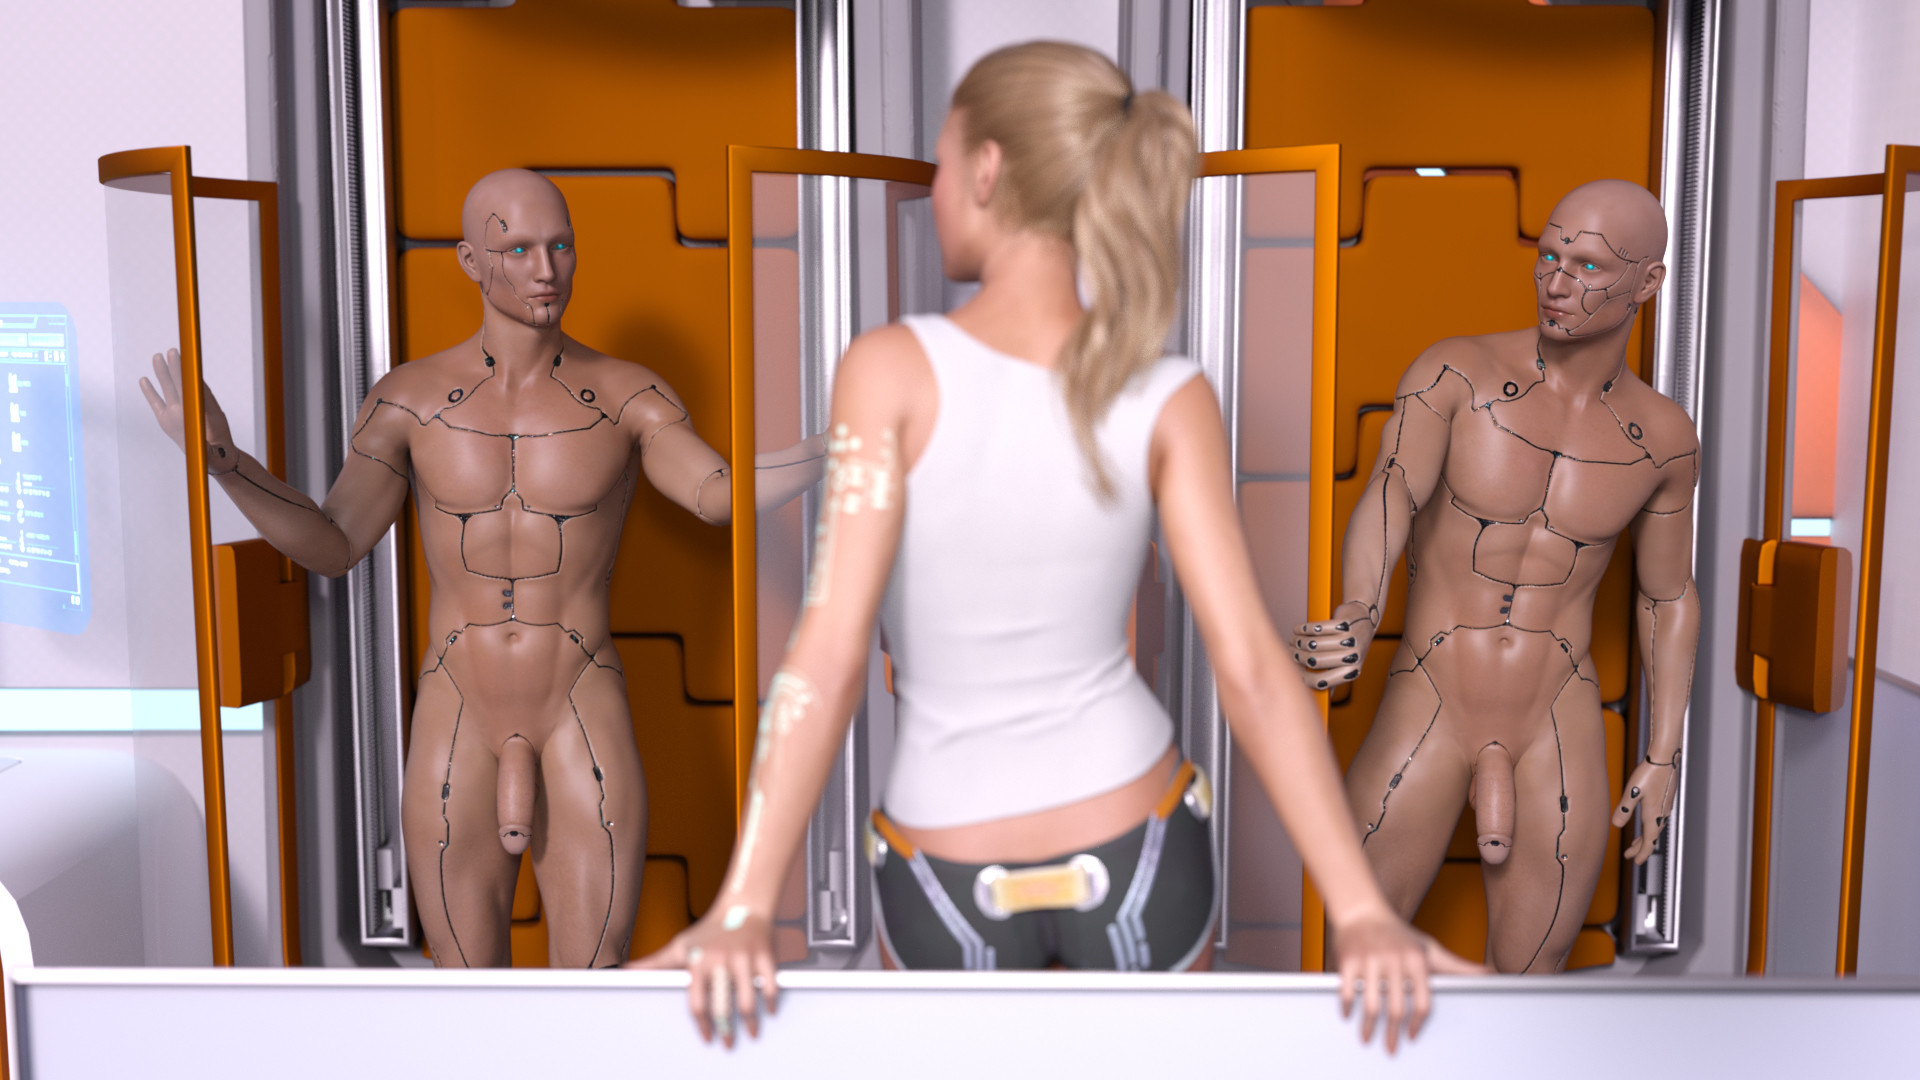 Is it ok to abuse, trust or make love to a robot